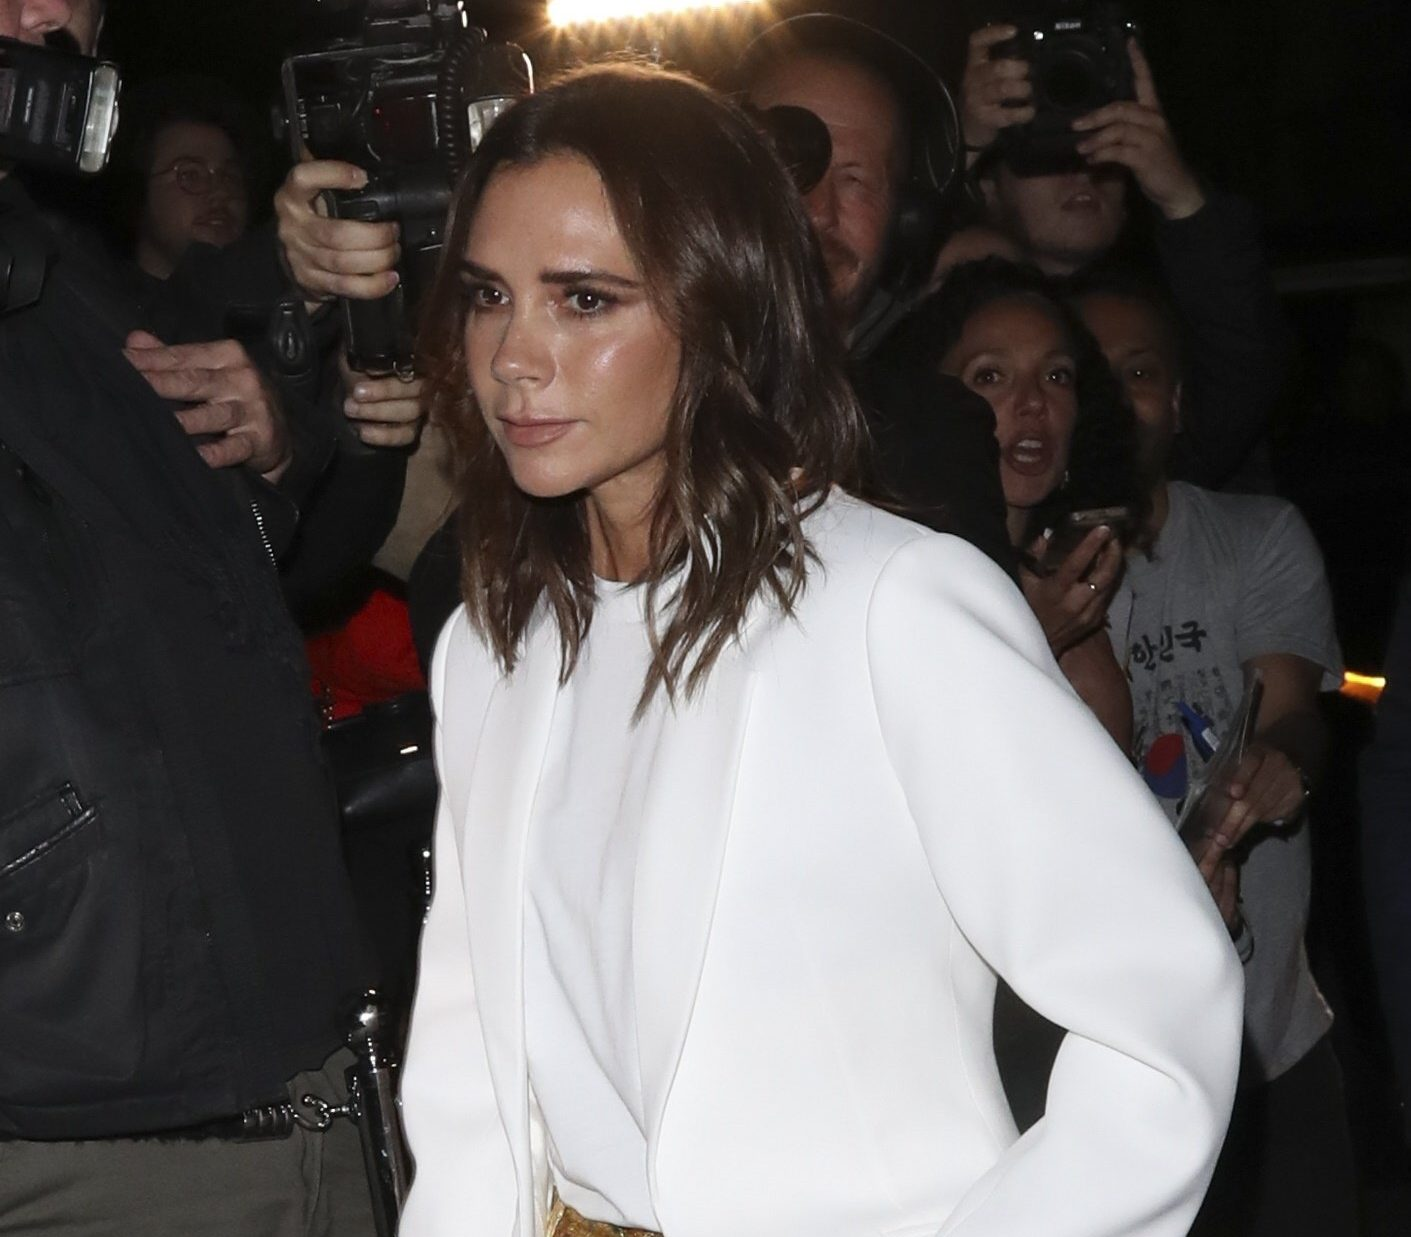 BGUK_1339437 - London, UNITED KINGDOM - LFW: Victoria Beckham x Vogue - party at ???MARK'S CLUB Pictured: Victoria Beckham BACKGRID UK 16 SEPTEMBER 2018 BYLINE MUST READ: Old Boy's Club / BACKGRID UK: +44 208 344 2007 / uksales@backgrid.com USA: +1 310 798 9111 / usasales@backgrid.com *UK Clients - Pictures Containing Children Please Pixelate Face Prior To Publication*